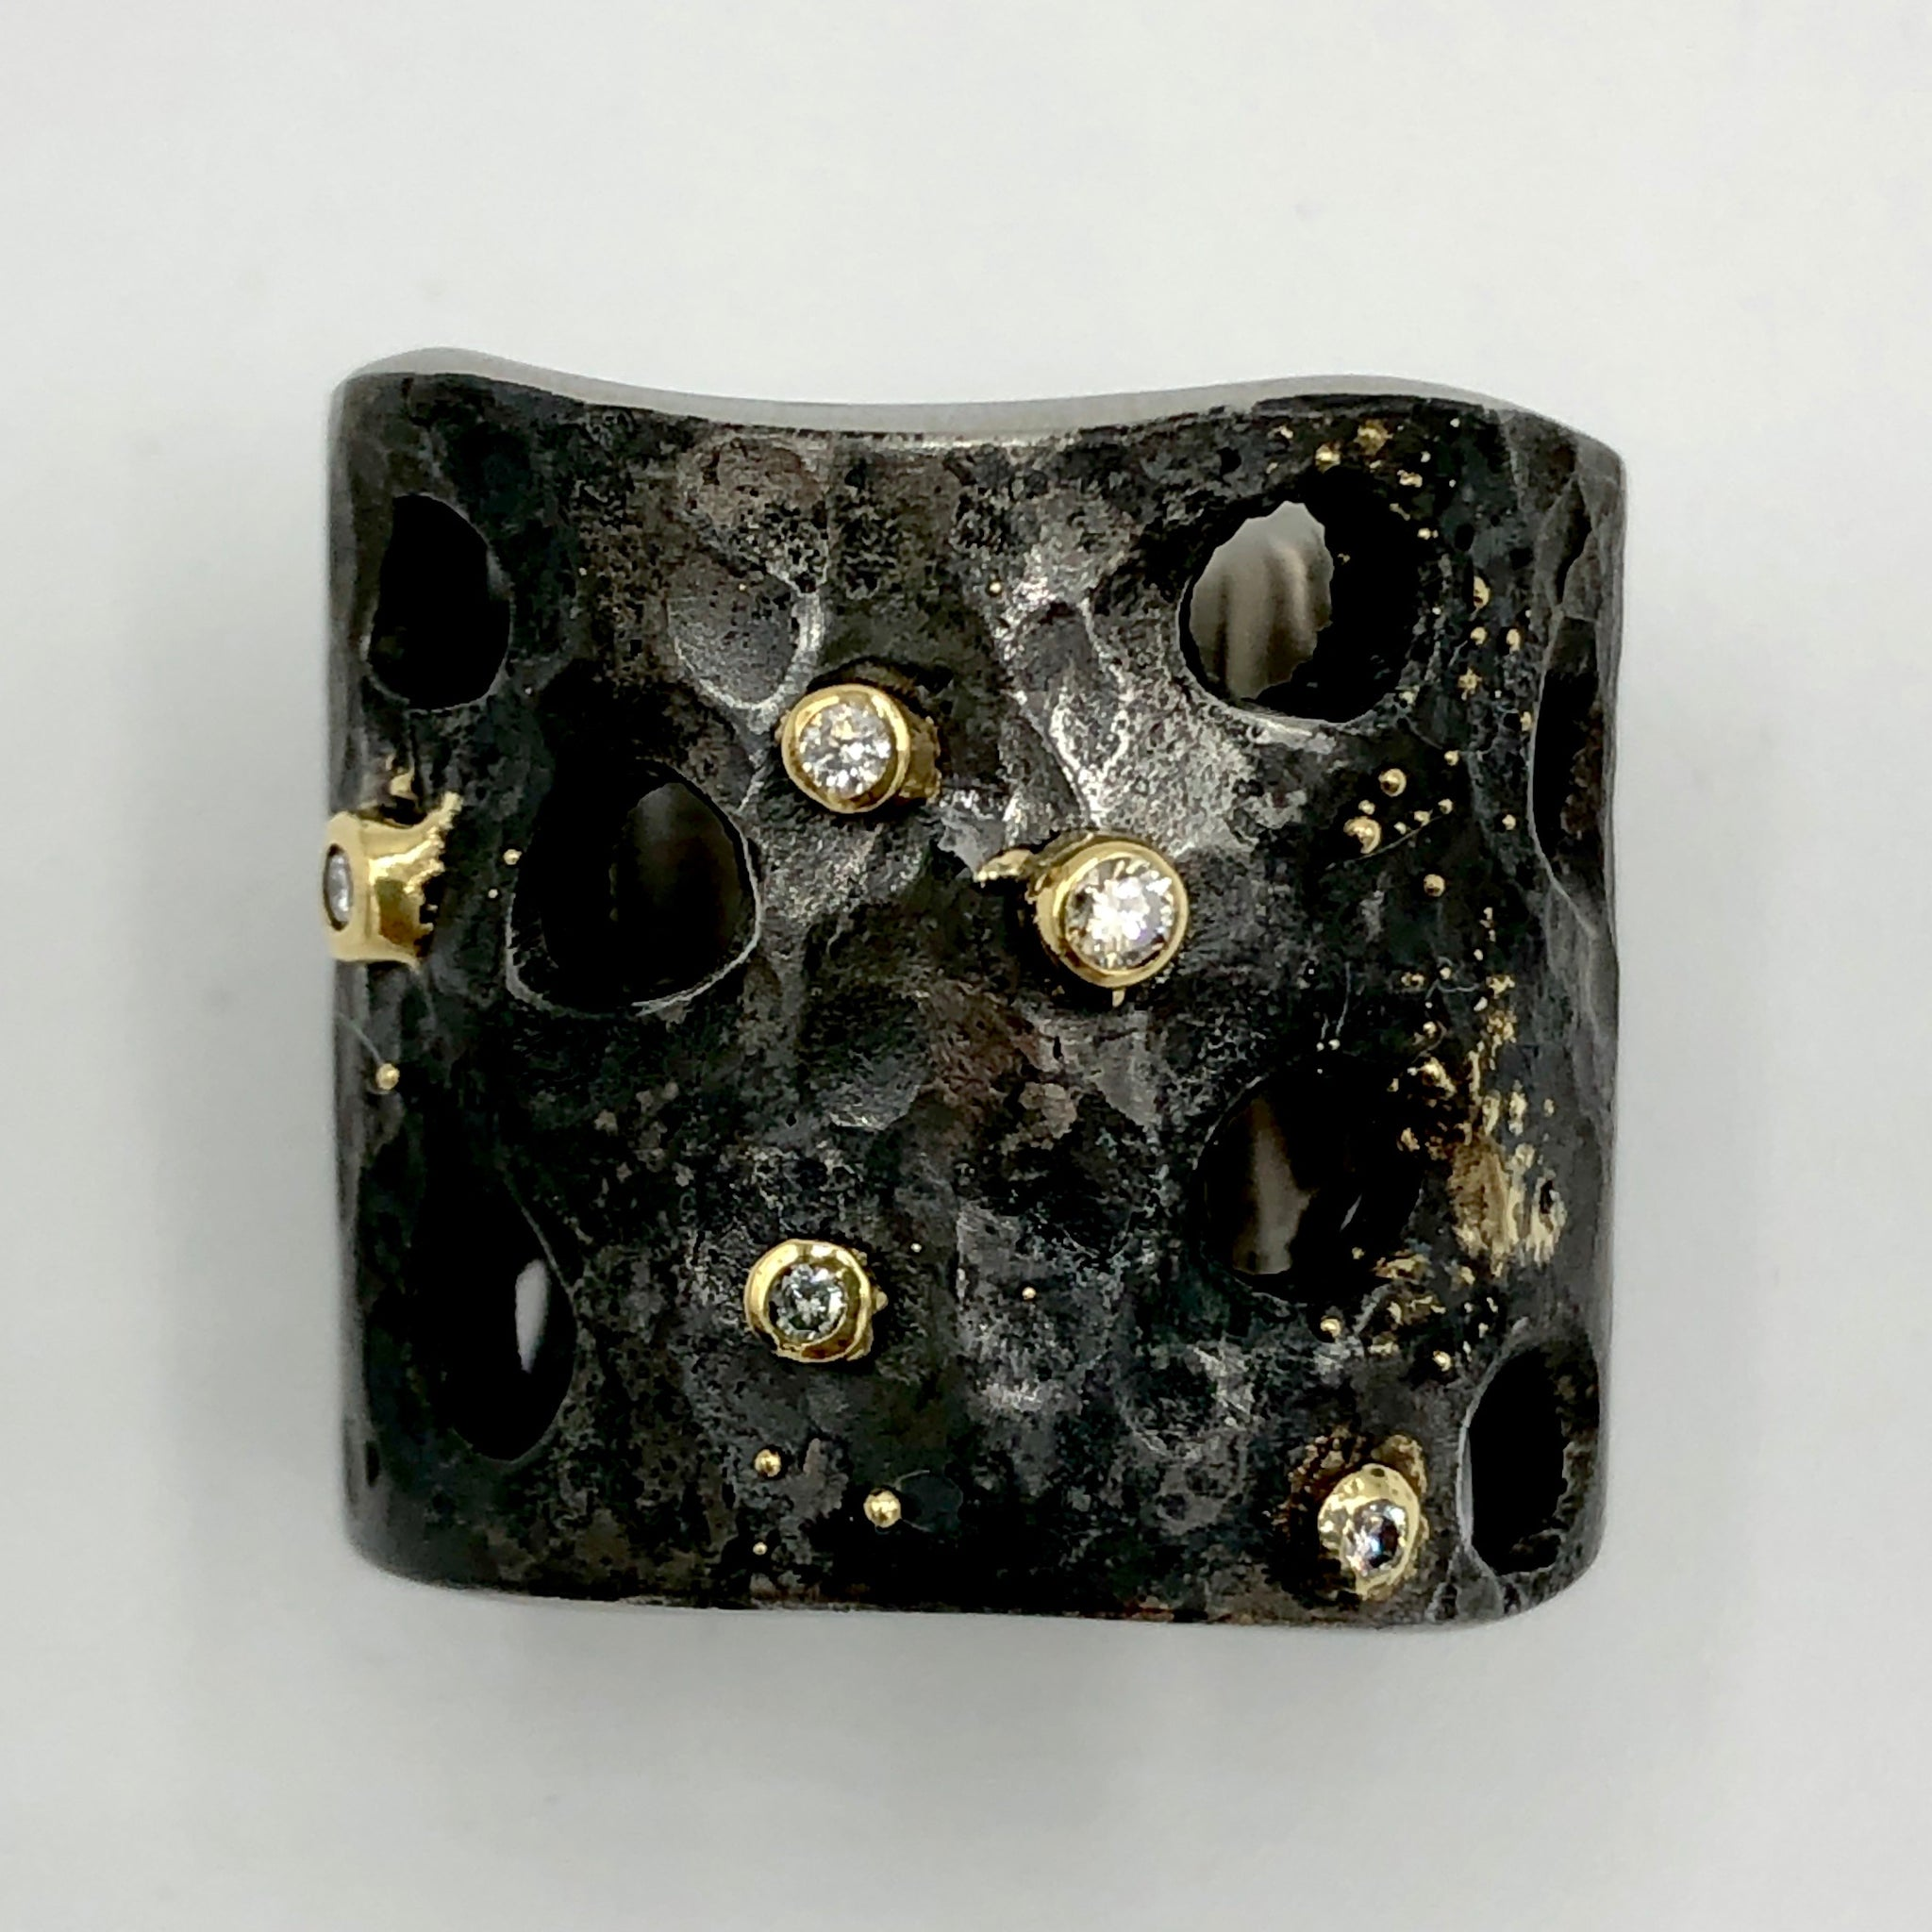 Steel & Gold Ring with Diamonds